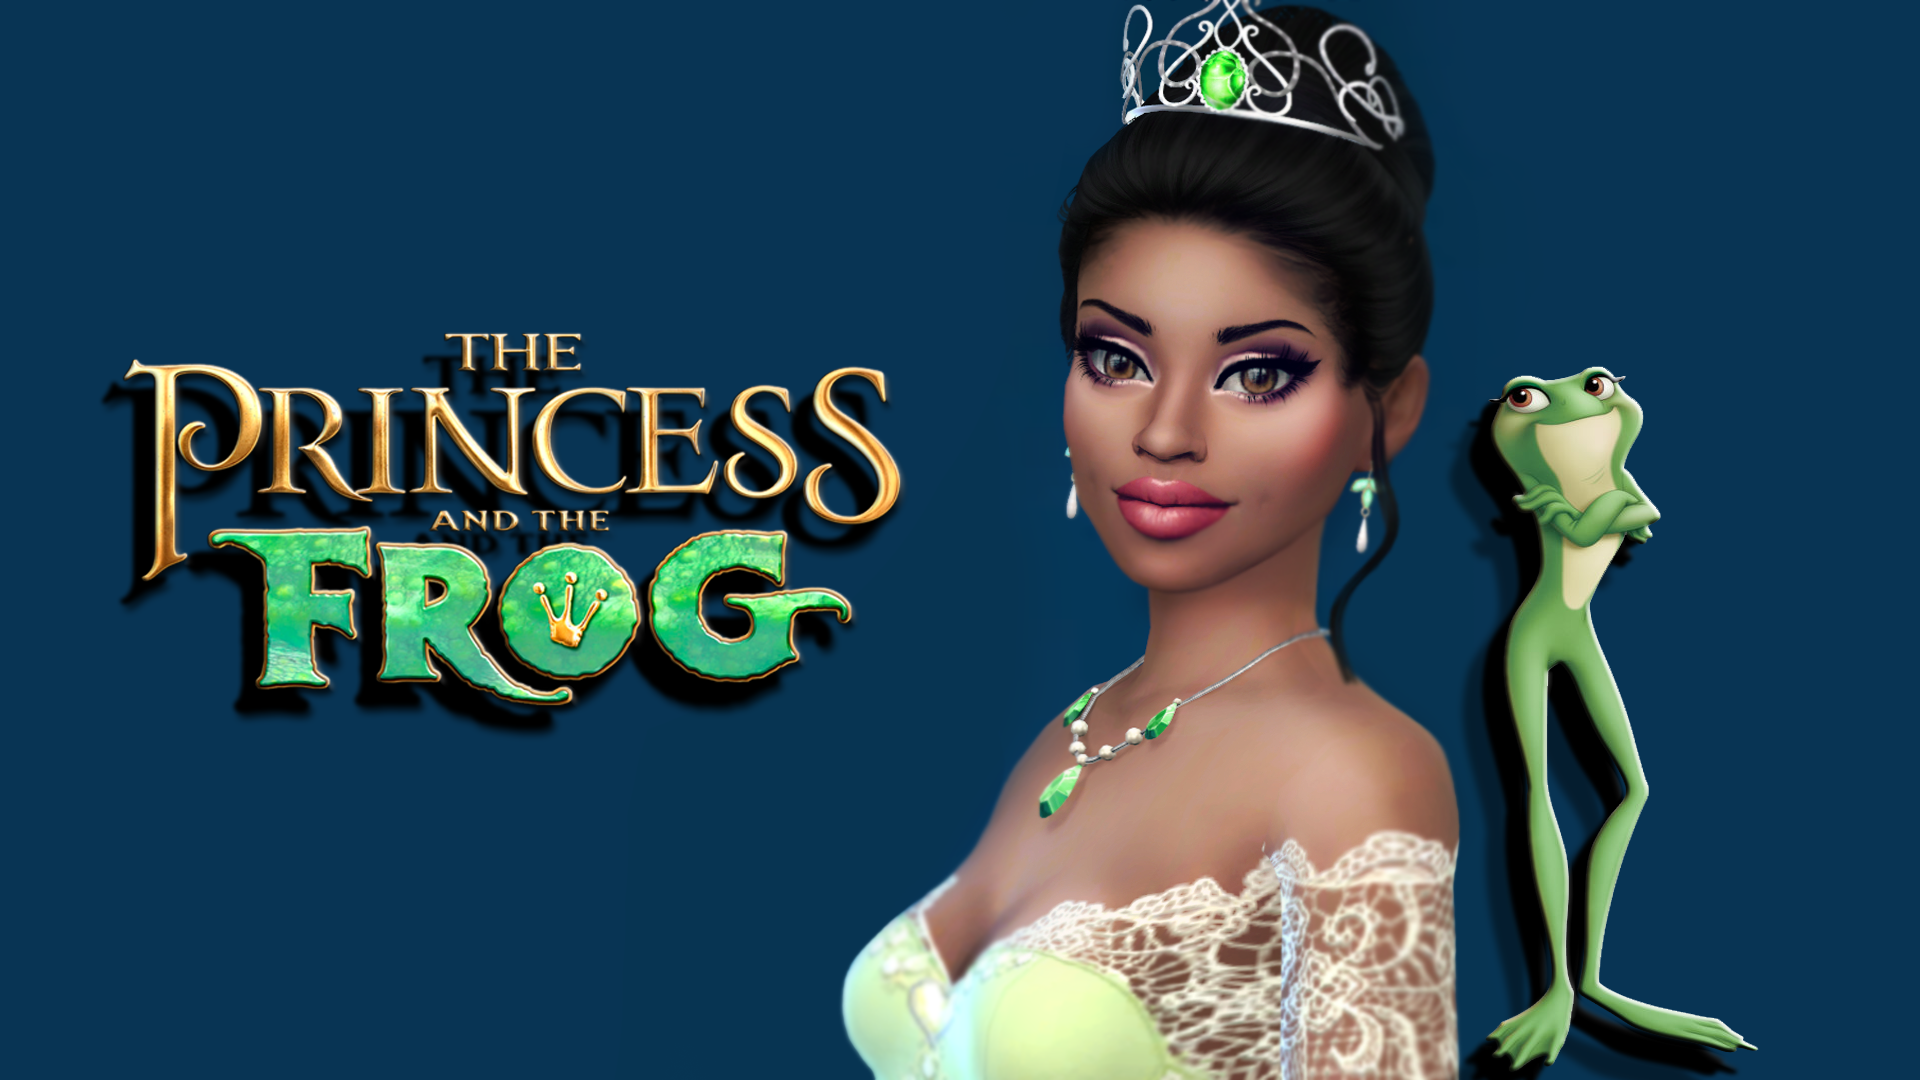 """The only way that you can get what you want in this world is through hard work."" ―Tiana Video: Custom content: Skin: http://www.thesimsresource.com/downloads/details/category/sims4-skintones/title/alissa-skin/id/1350973/ Skintone: https://www.thesimsresource.com/downloads/details/category/sims4-skintones/title/skintone-set-v2/id/1313399/ Cleavage: http://js-sims.blogspot.co..."